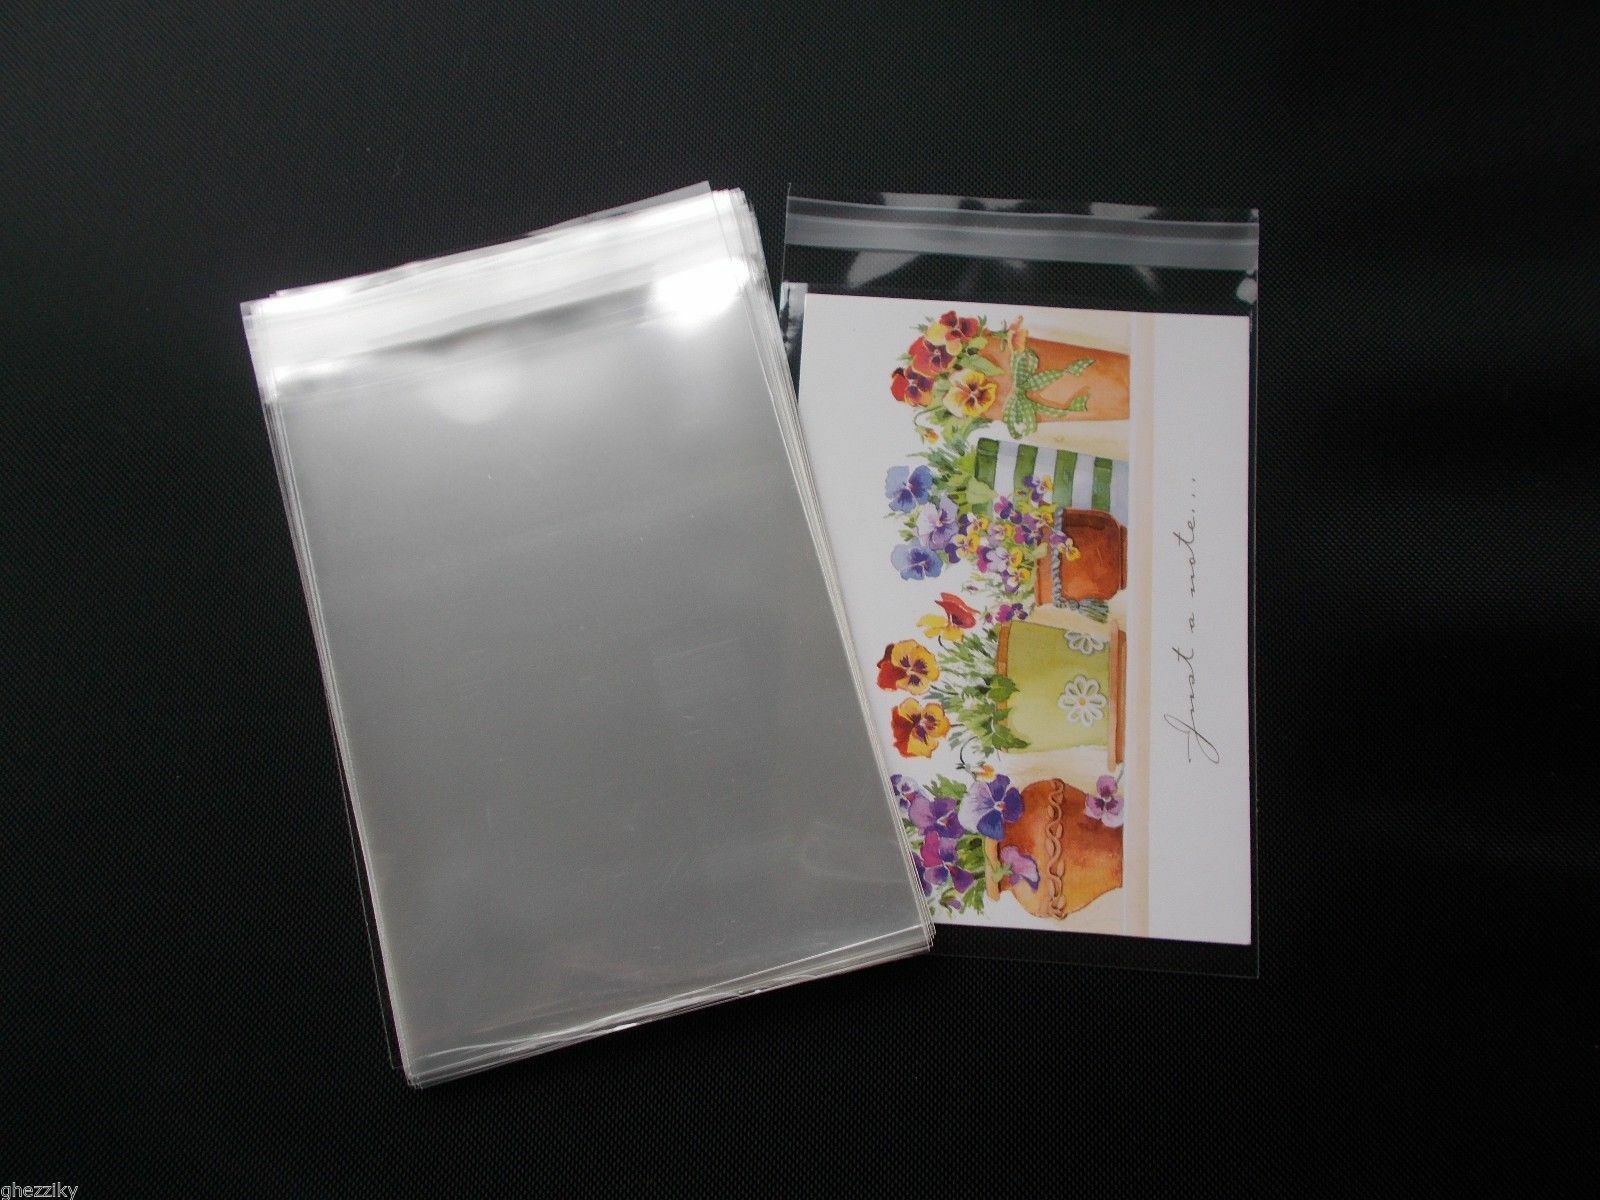 8x5 inch Plastic Bags 100 Resealable Zip top Bag Clear